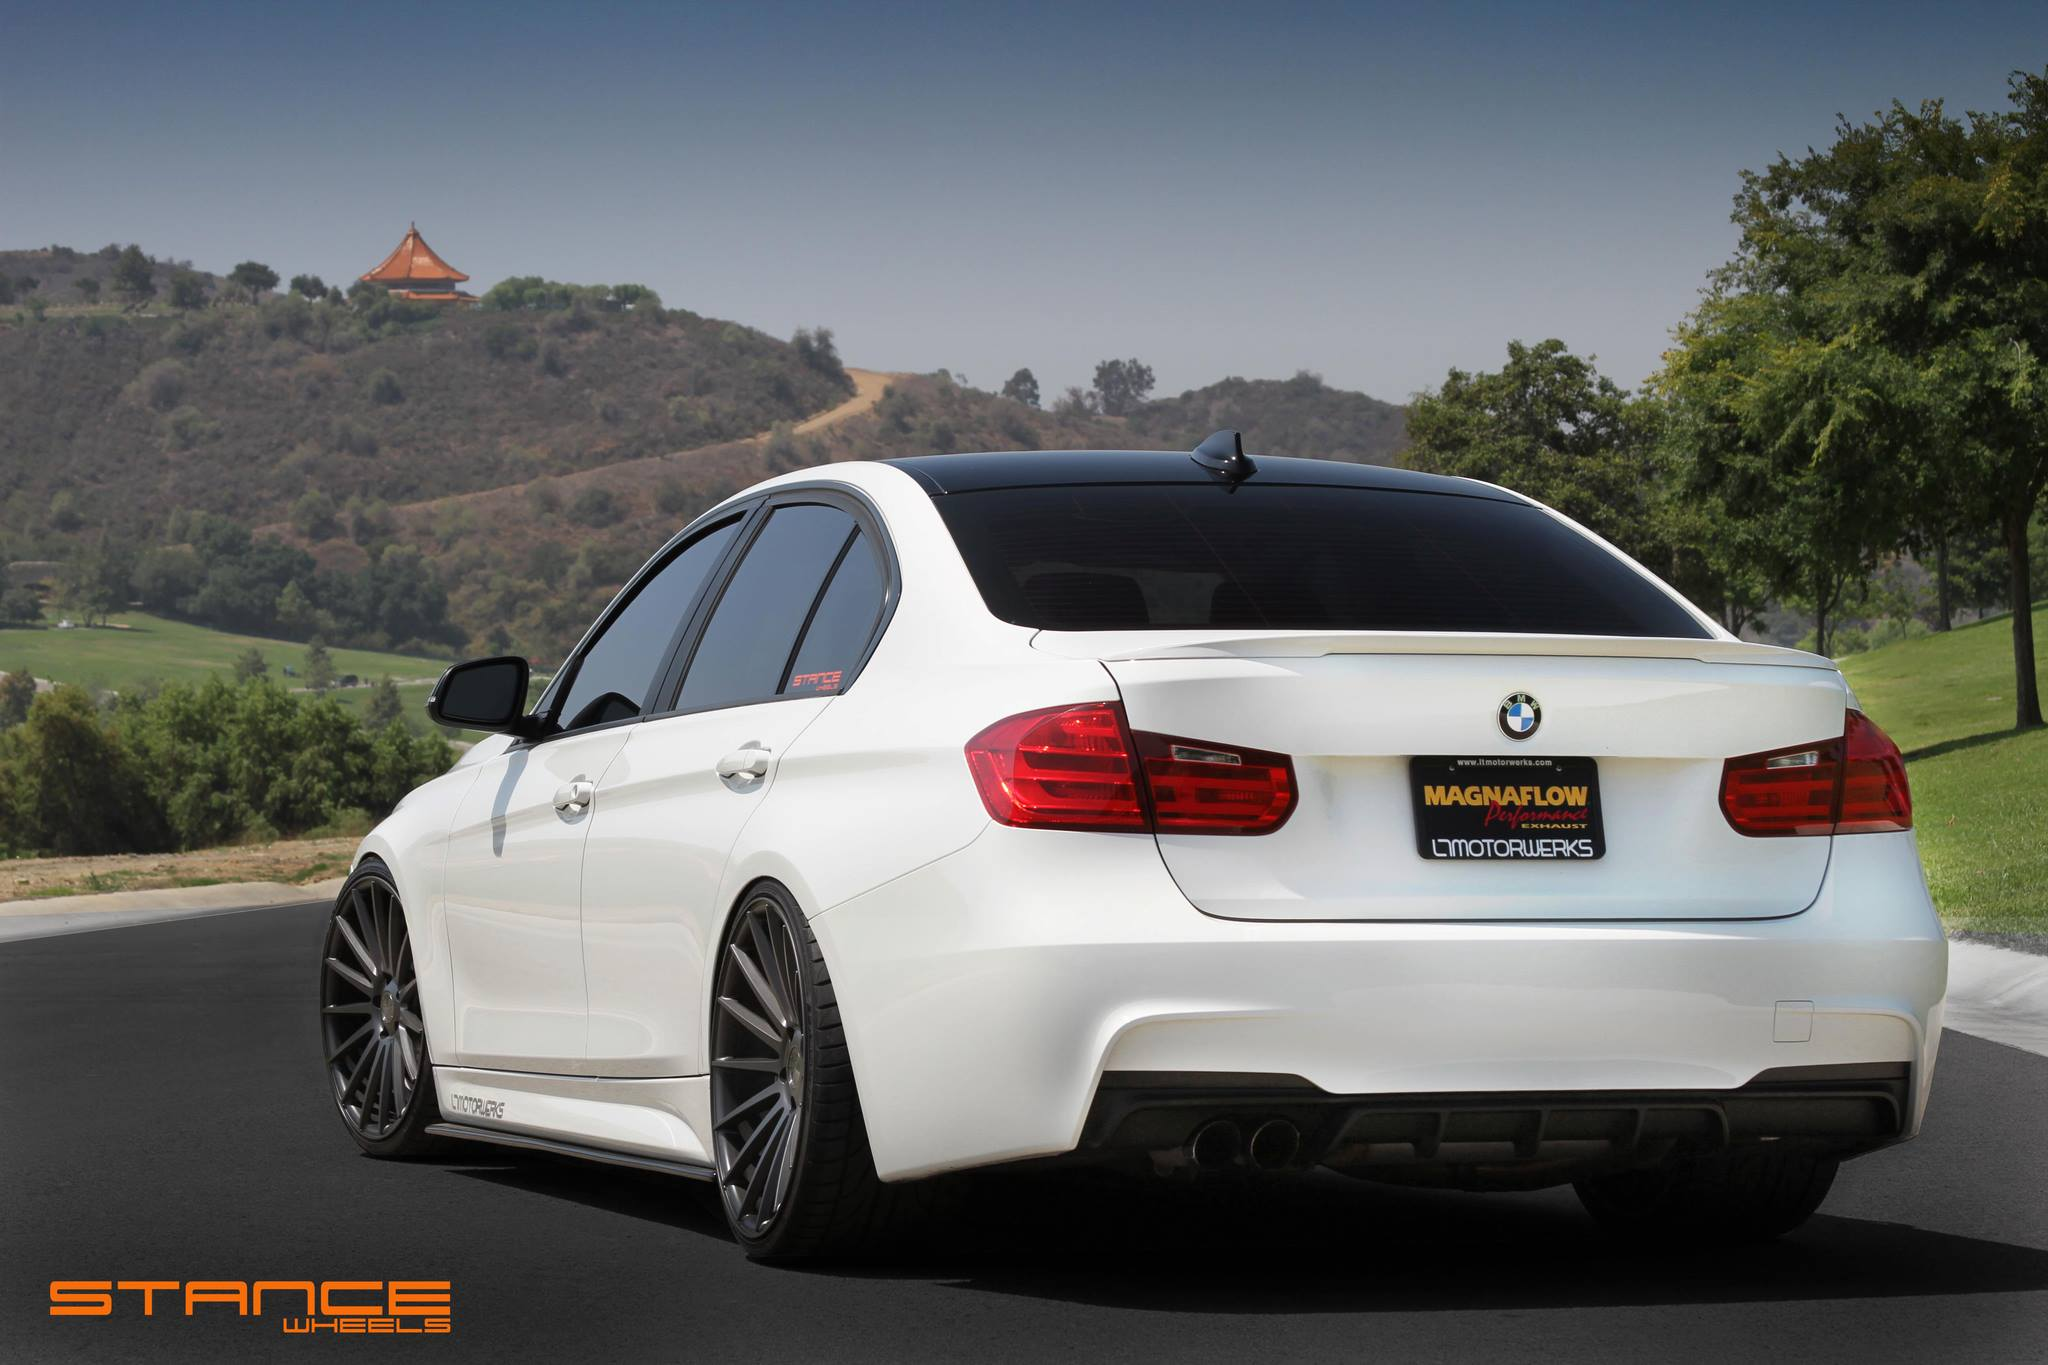 Stance Wheels SC-7 Slate Grey on White BMW F30